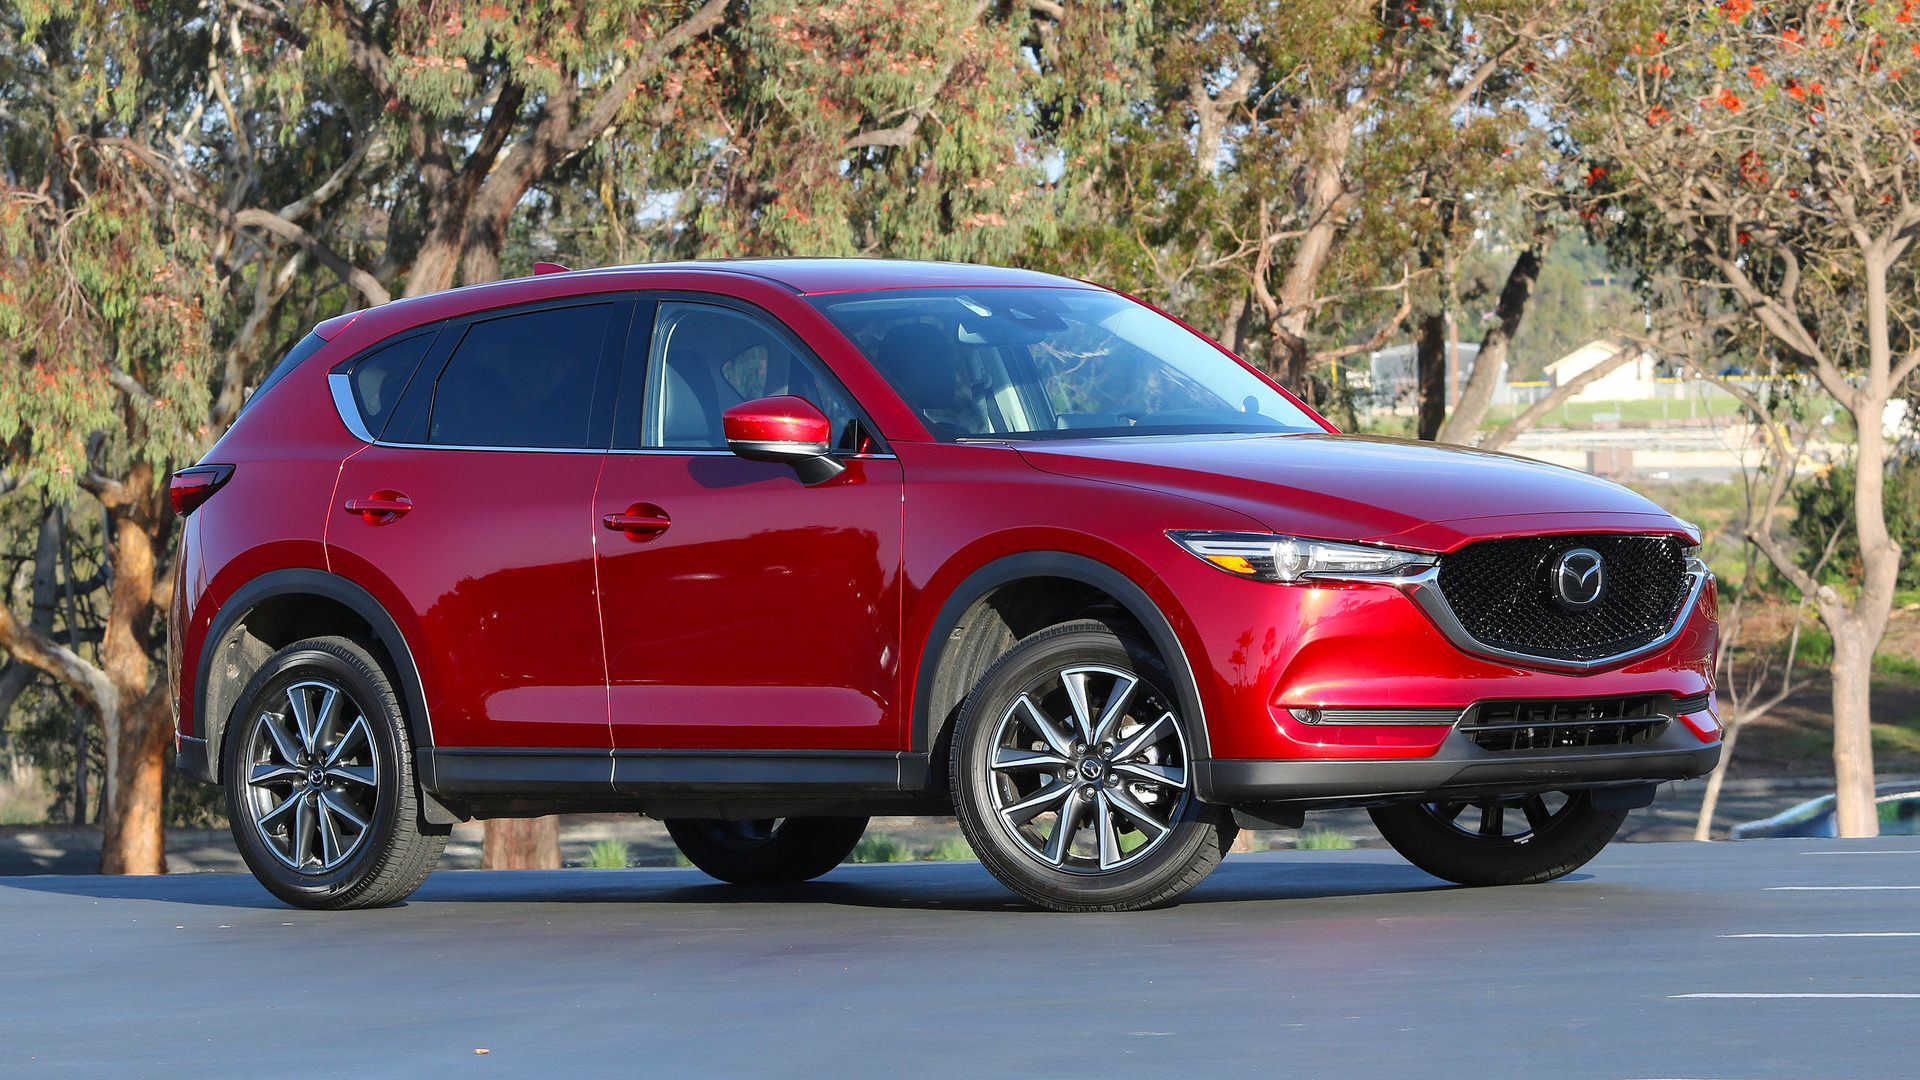 2017 mazda cx 5 first drive now with fewer downsides. Black Bedroom Furniture Sets. Home Design Ideas